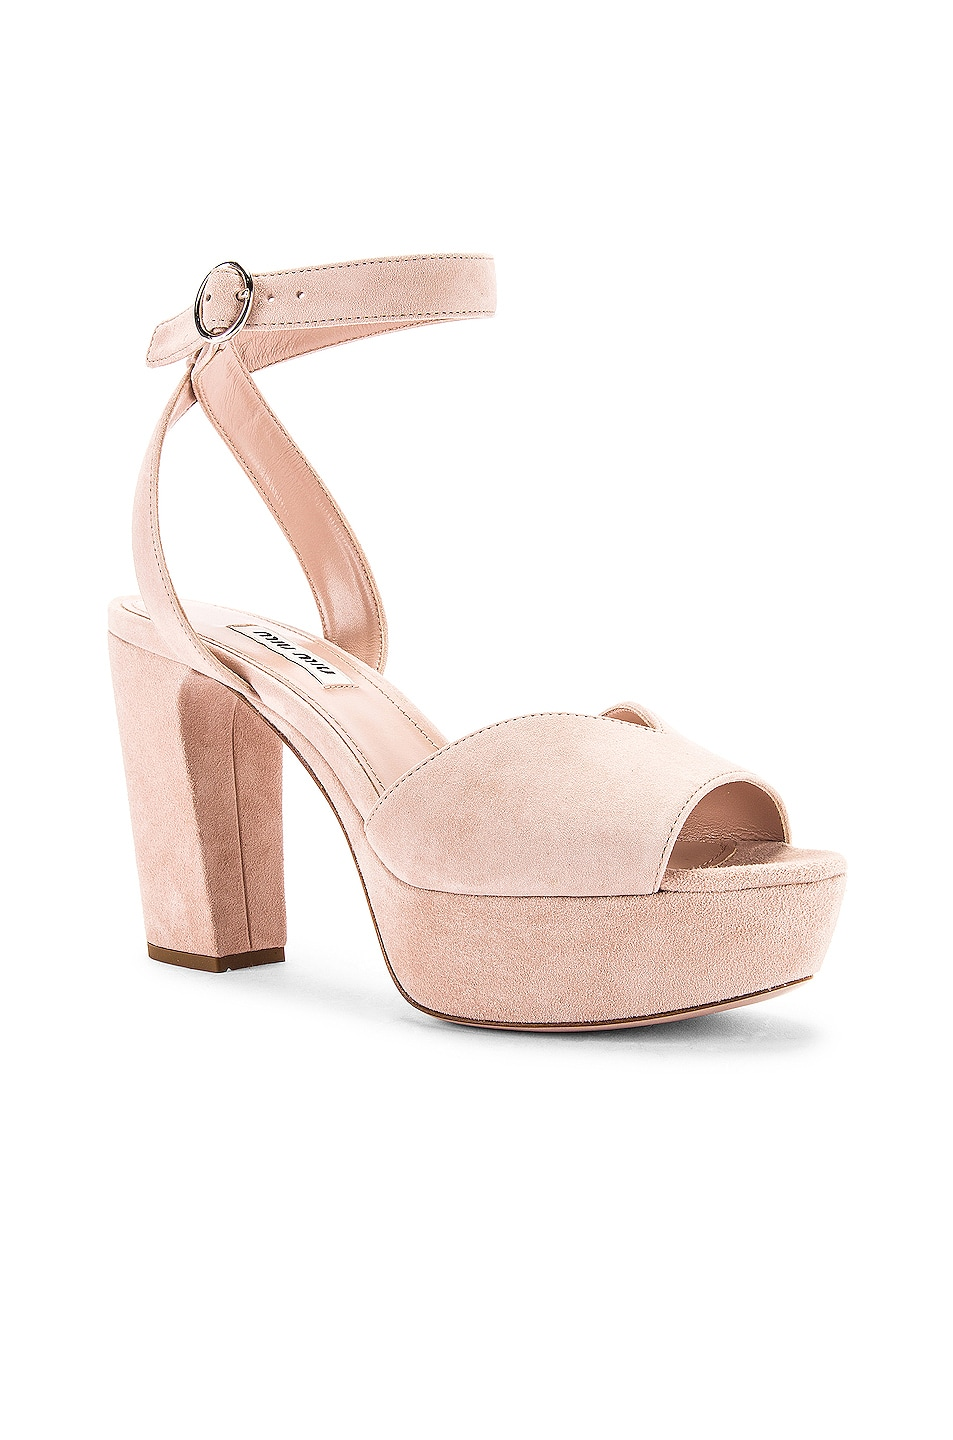 Image 2 of Miu Miu Platform Ankle Strap Sandals in Nude